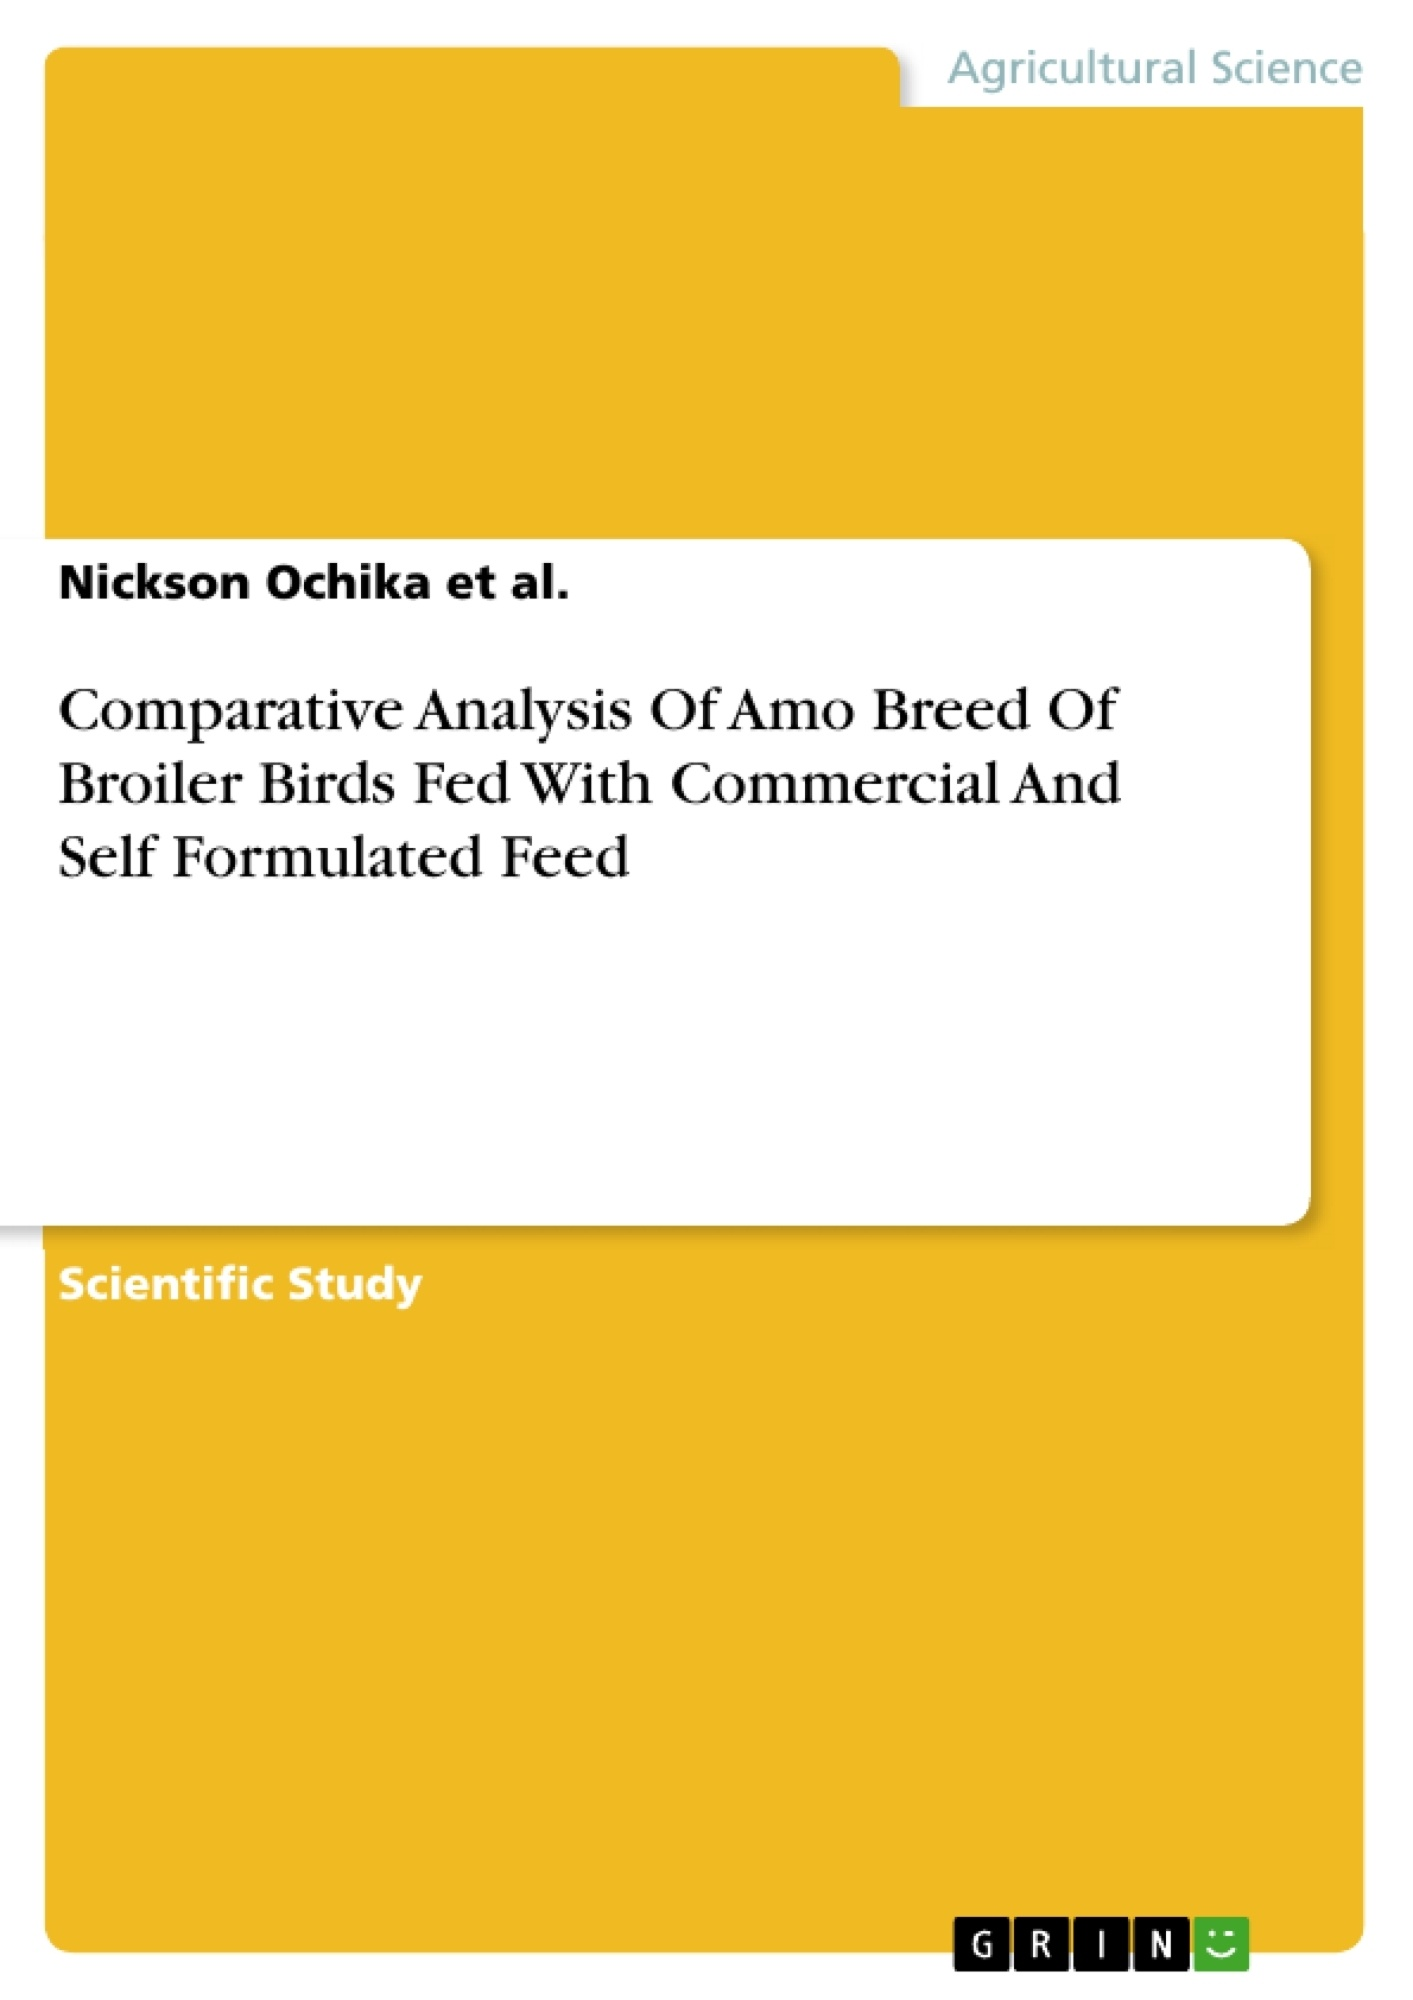 GRIN - Comparative Analysis Of Amo Breed Of Broiler Birds Fed With  Commercial And Self Formulated Feed